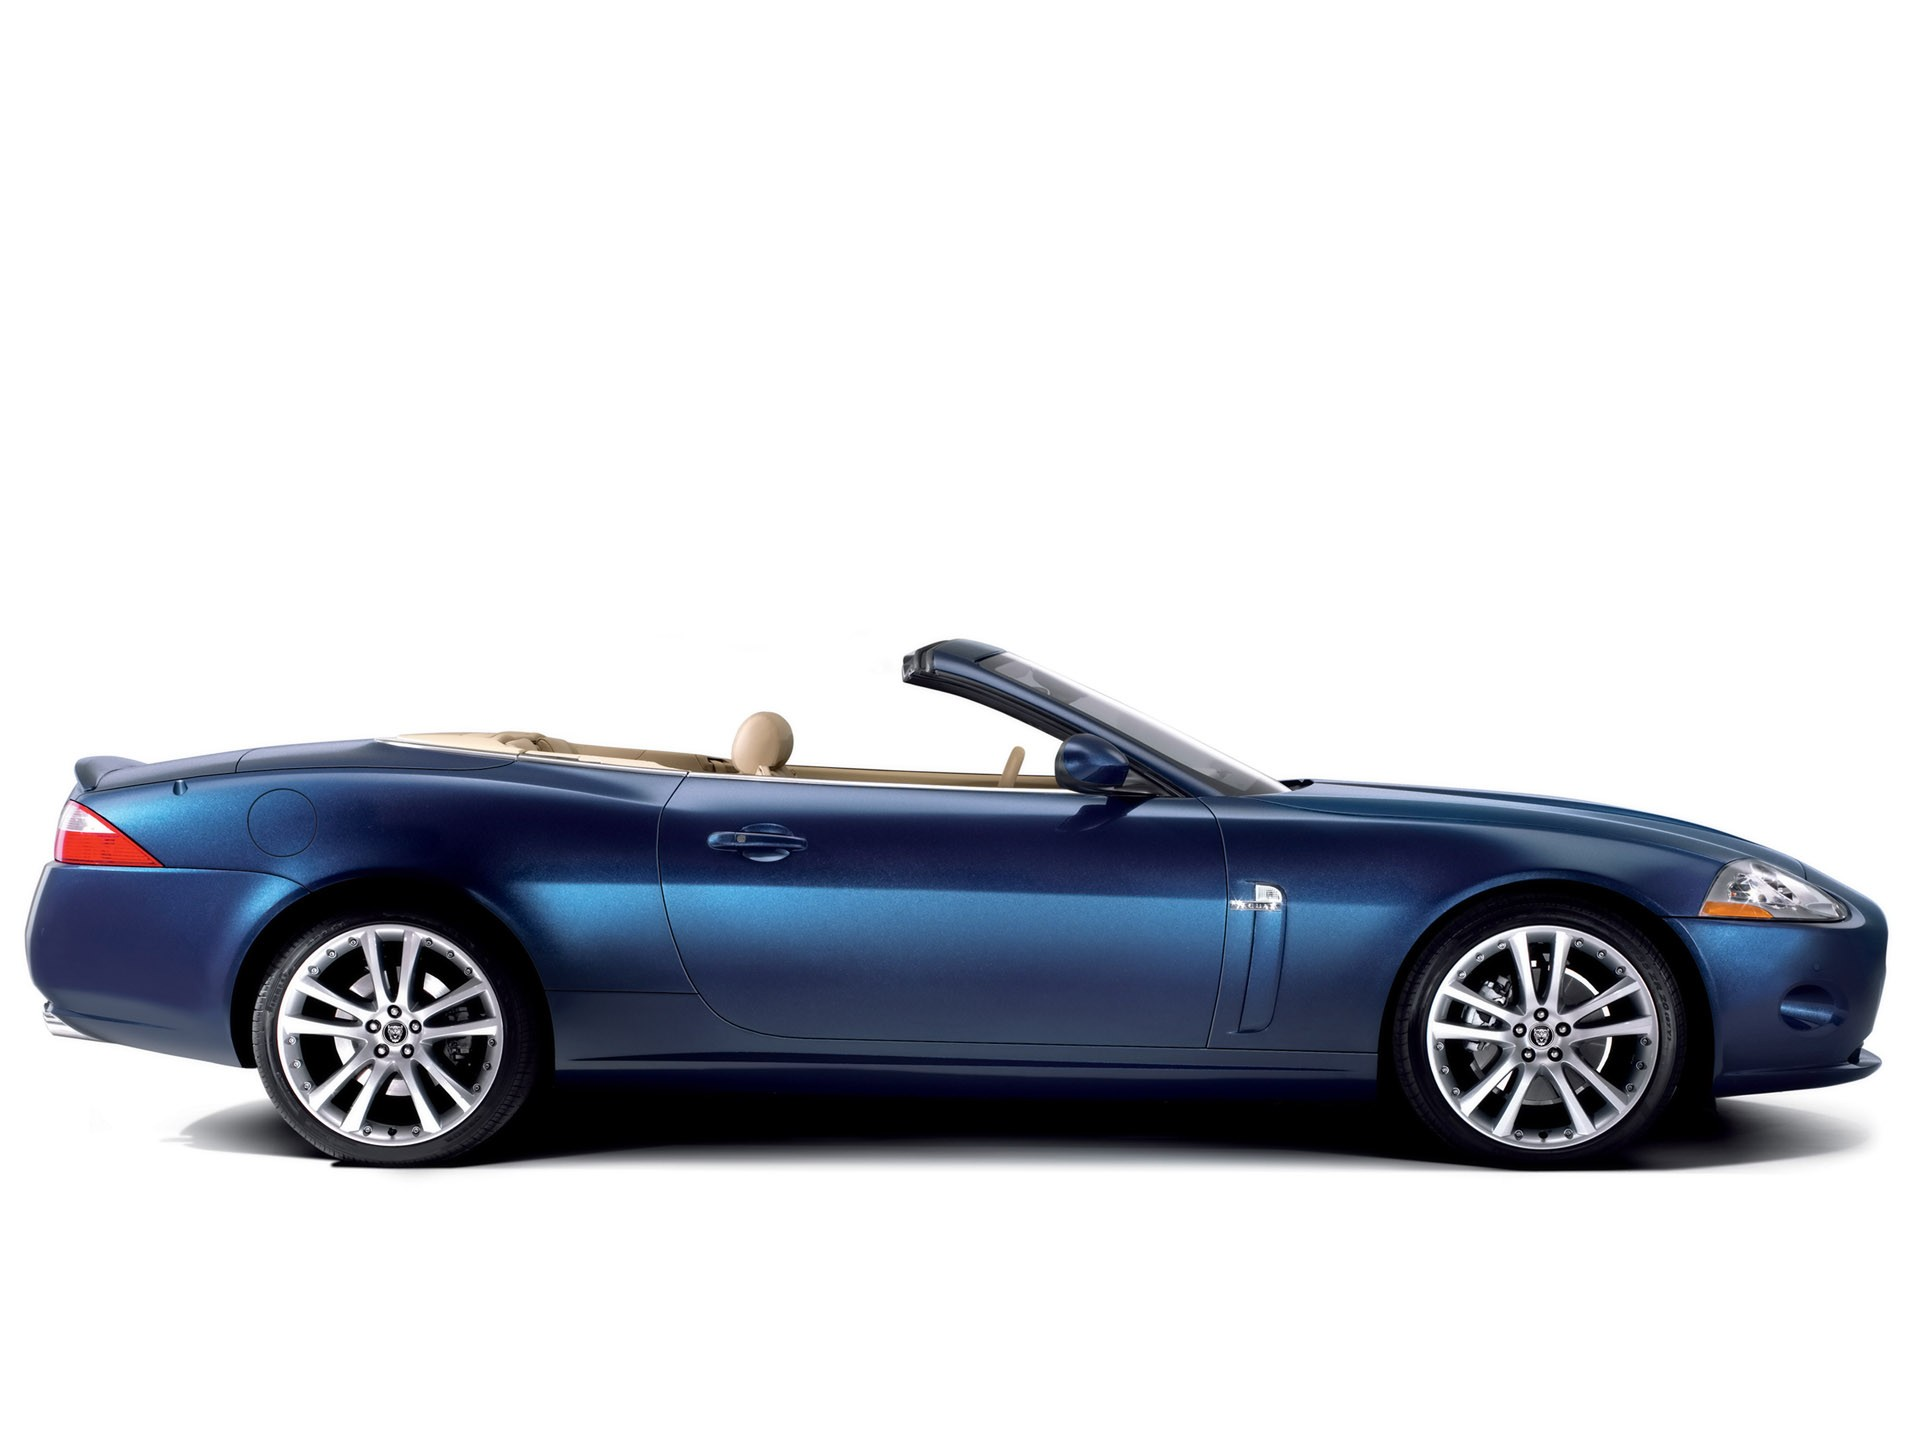 2007 XK and XKR Convertible Top